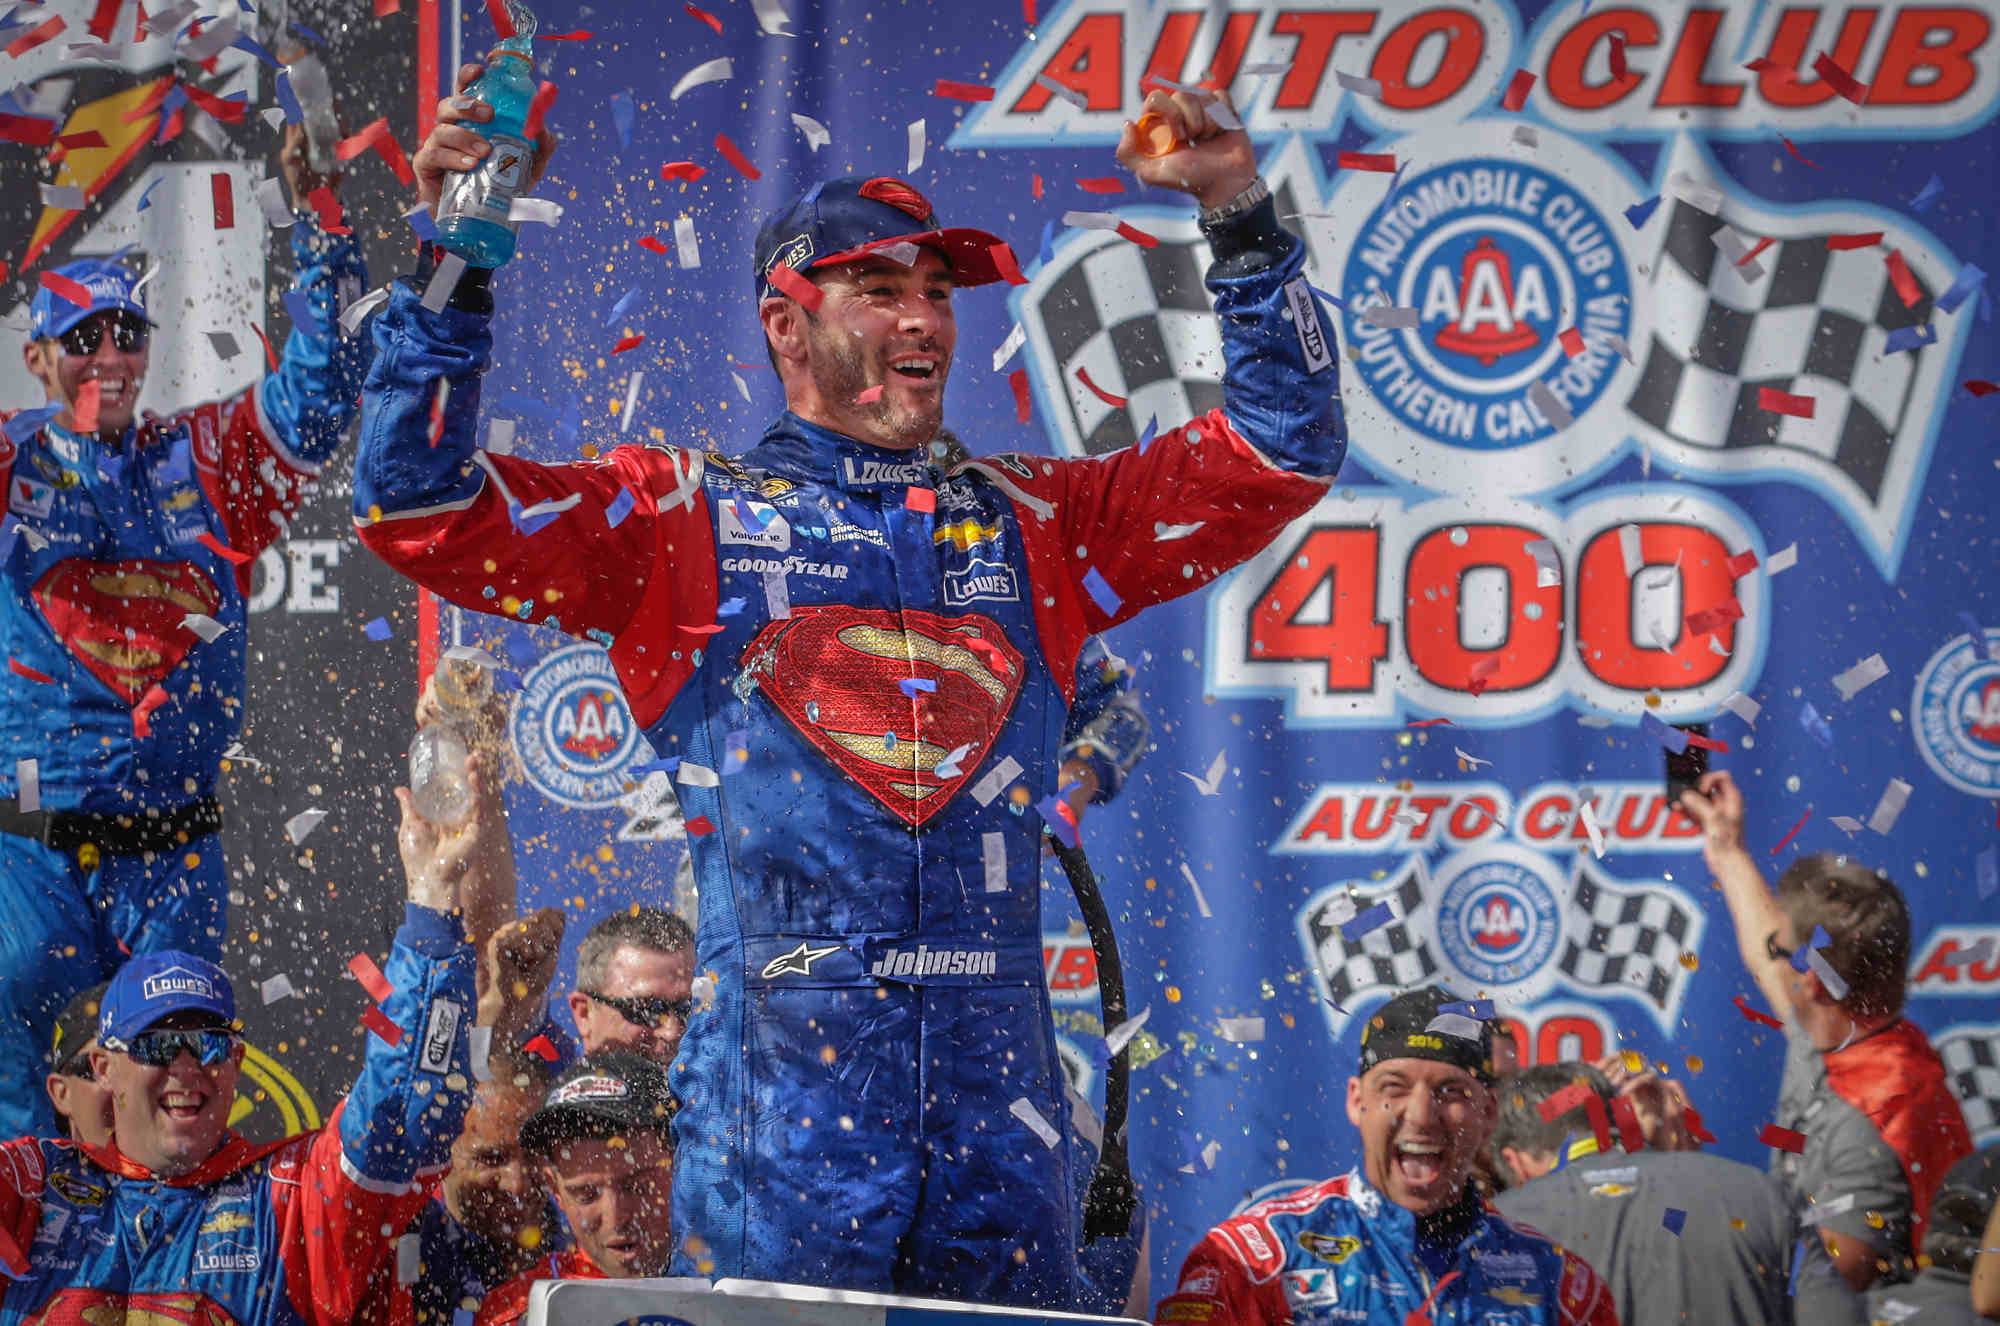 Jimmie Johnson, driver of the #48 LoweÕs/Superman Chevrolet SS, celebrates his 77th career victory, Sunday, March 20, 2016 in the NASCAR Sprint Cup Series race at Auto Club Speedway in Fontana, California. (Photo by Harold Hinson for Chevy Racing)